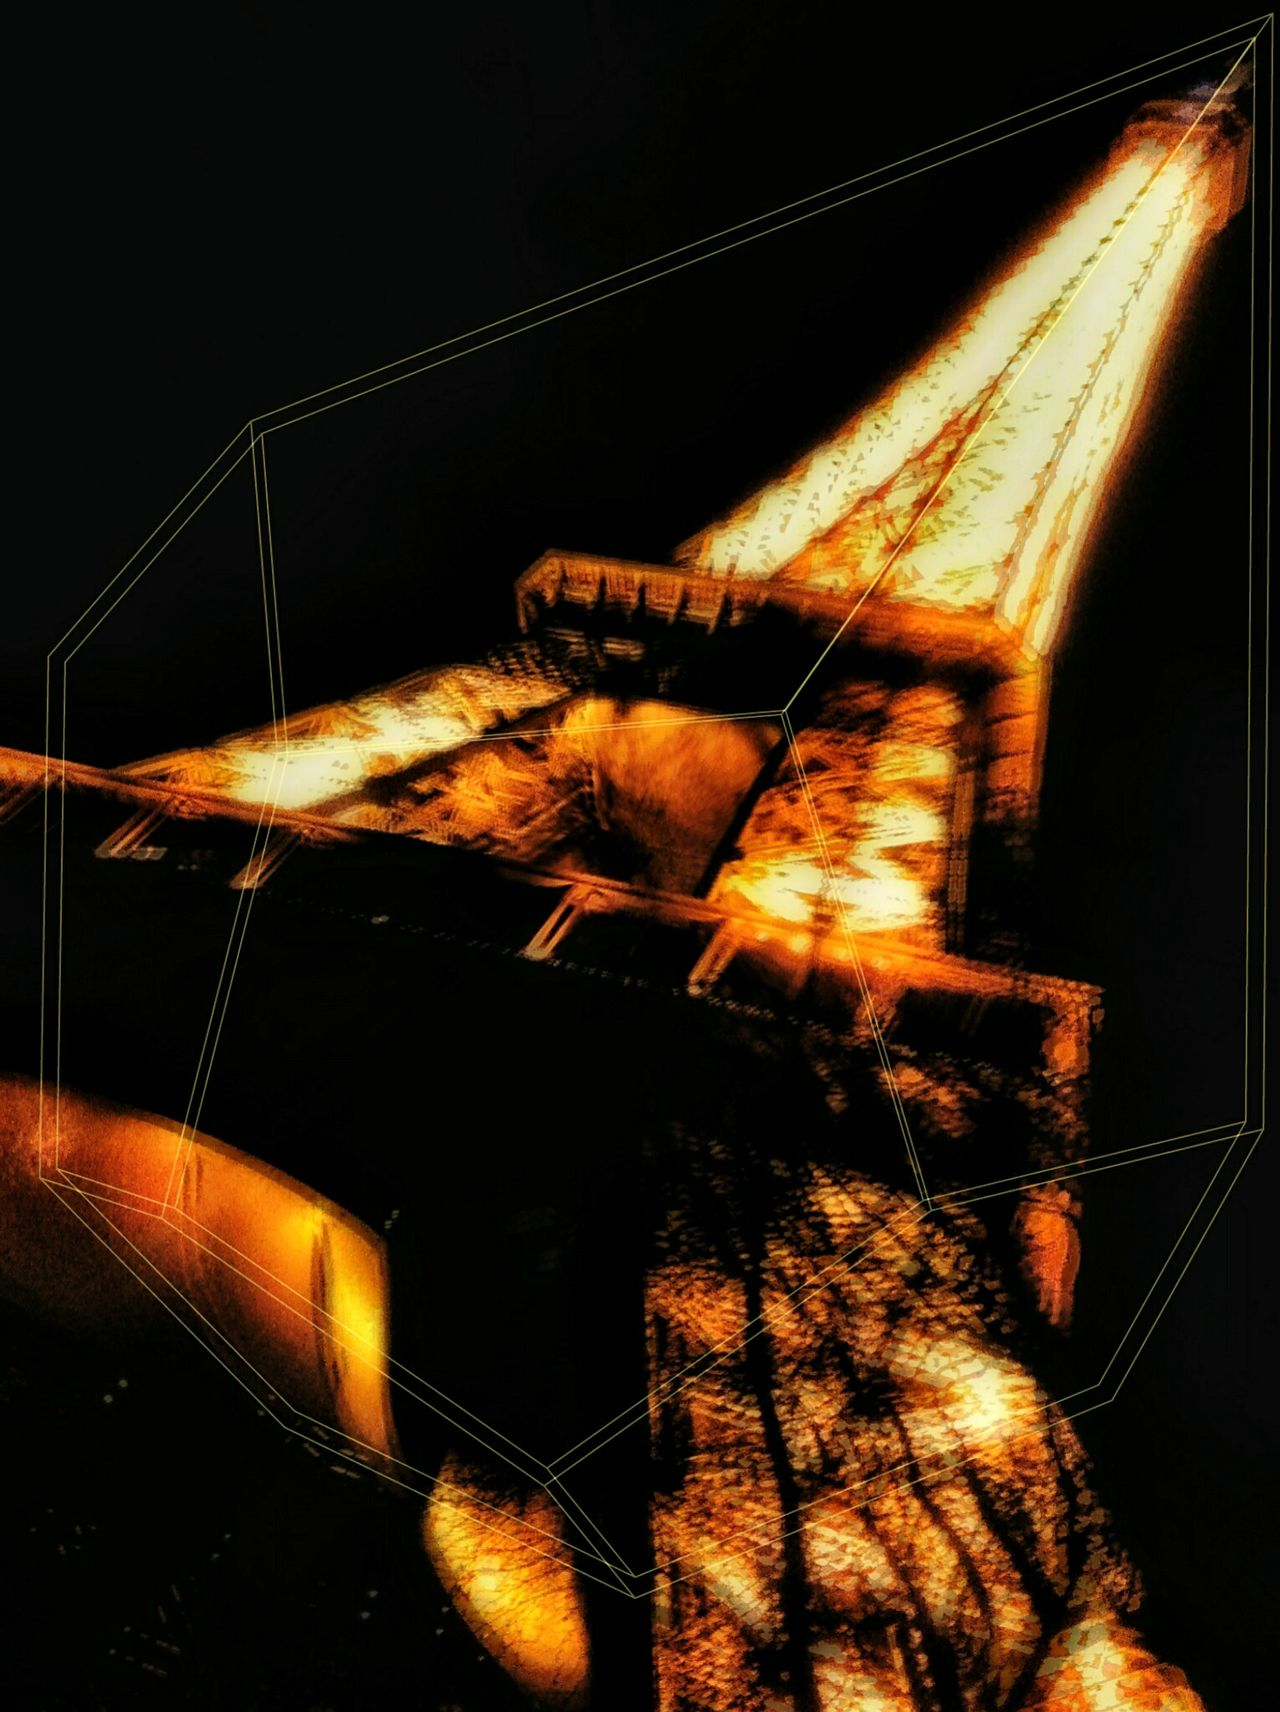 Eiffel Tower On Fire Graphic Night Black Background No People Indoors